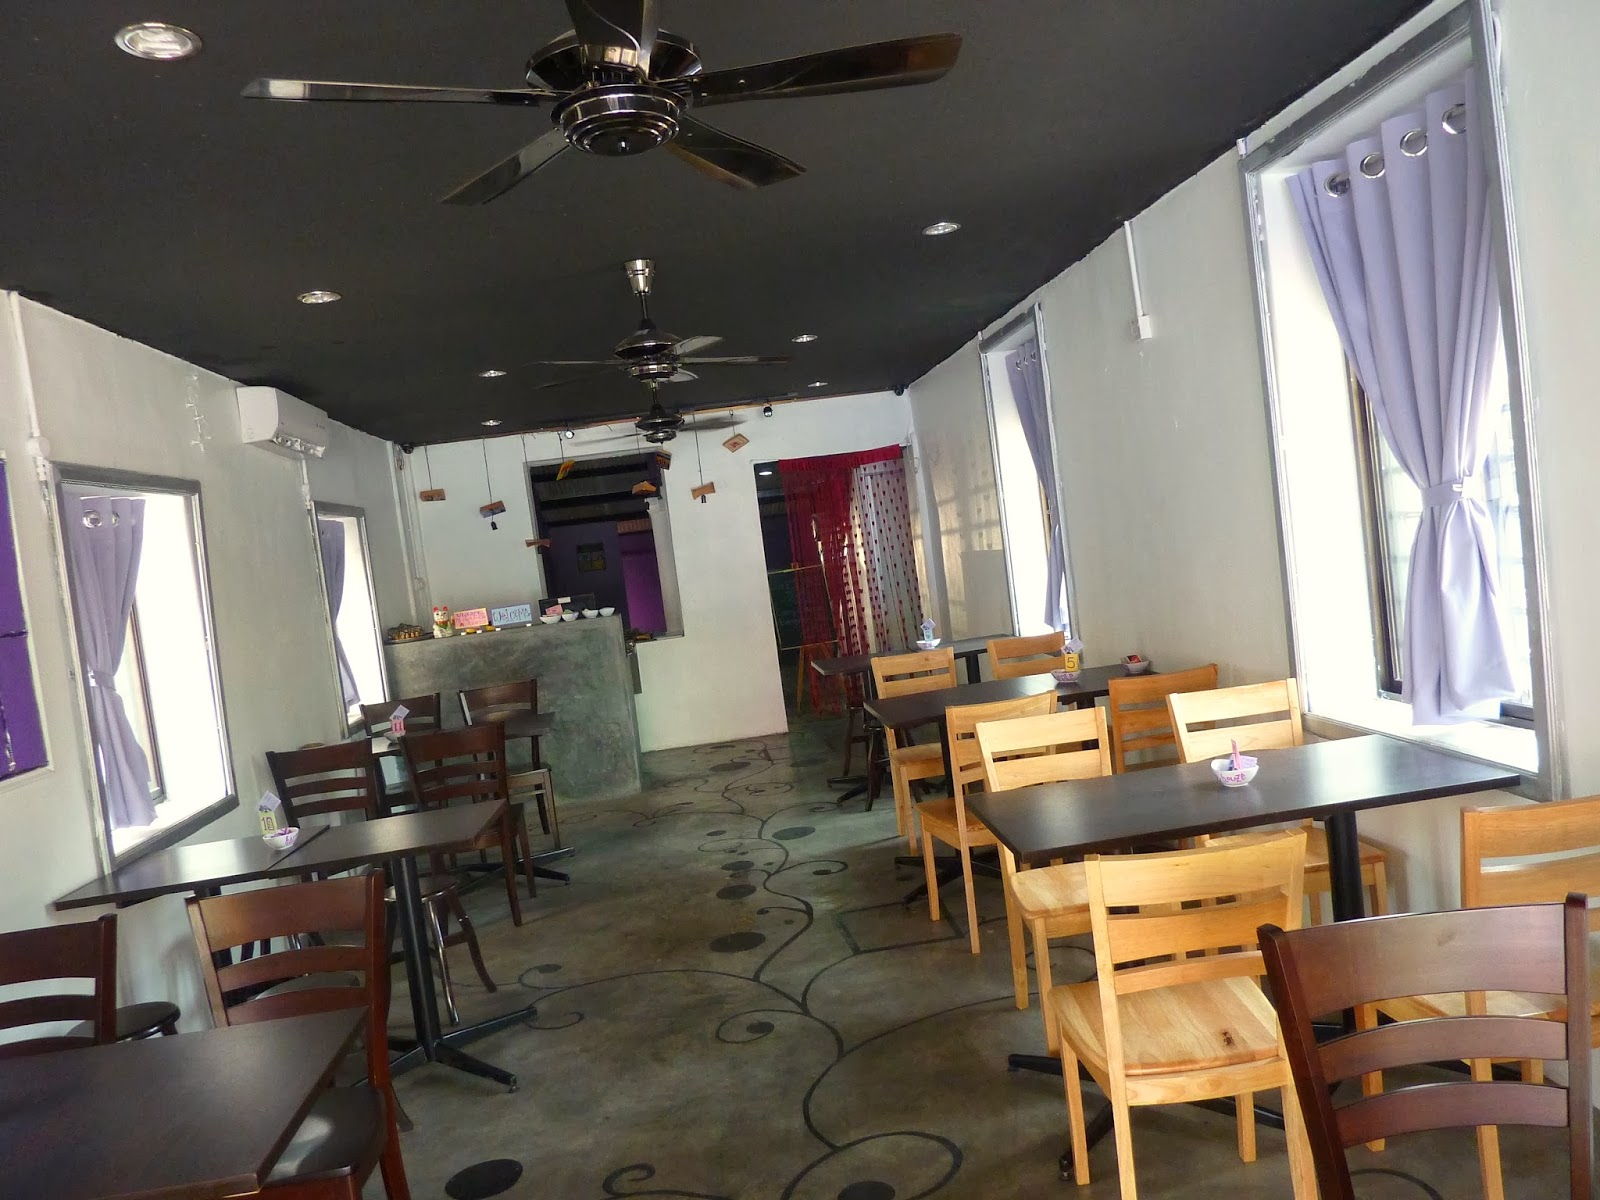 penang food for thought: purple-houze café